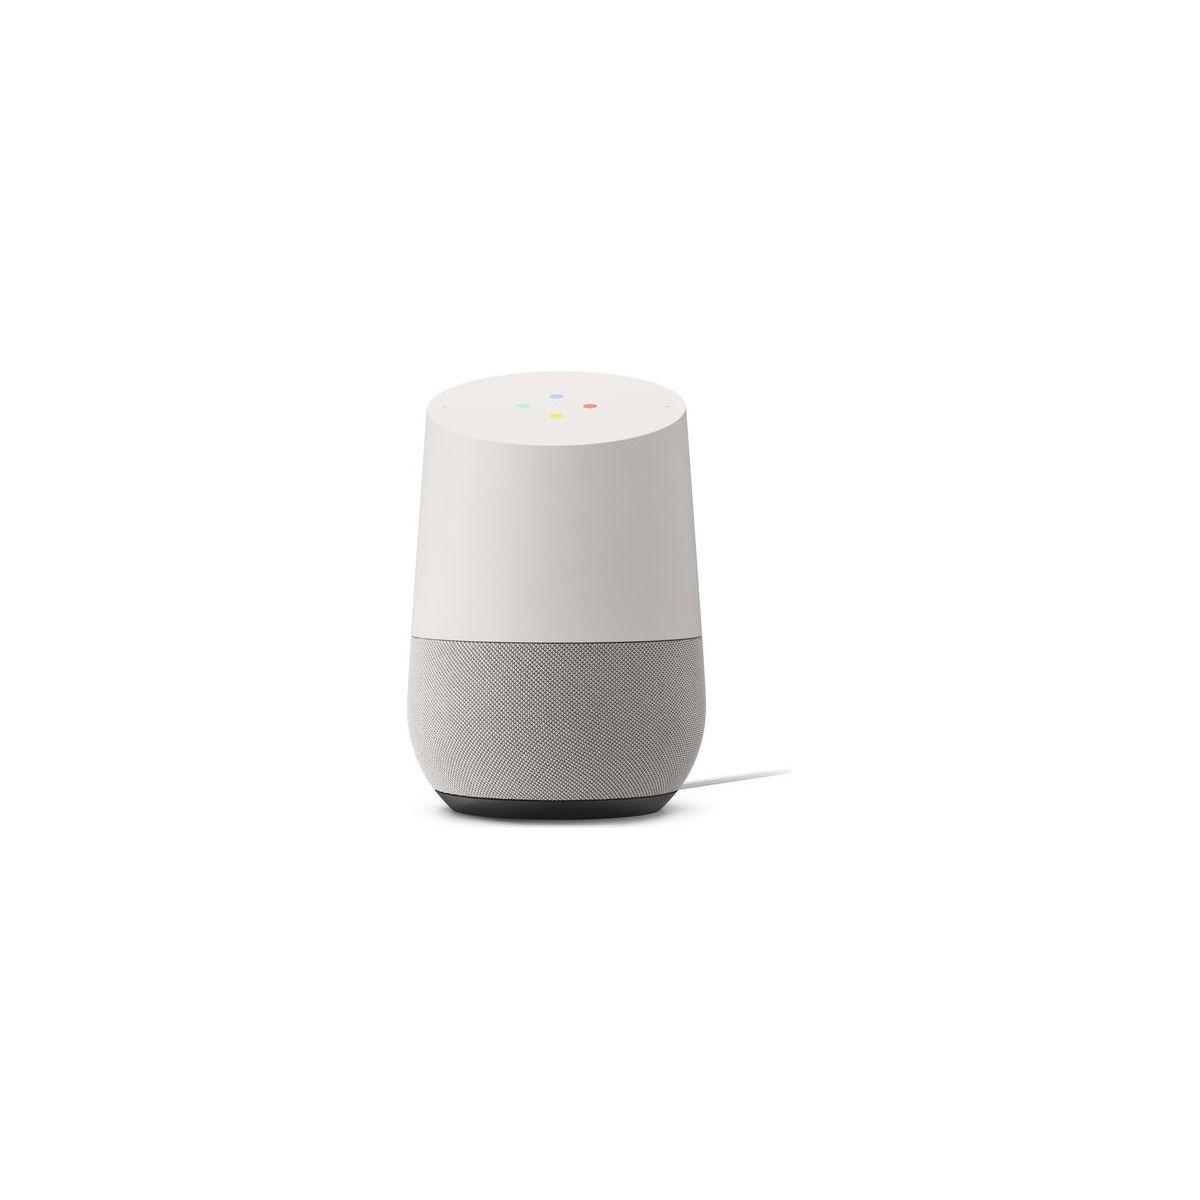 Assistant vocal google home (photo)